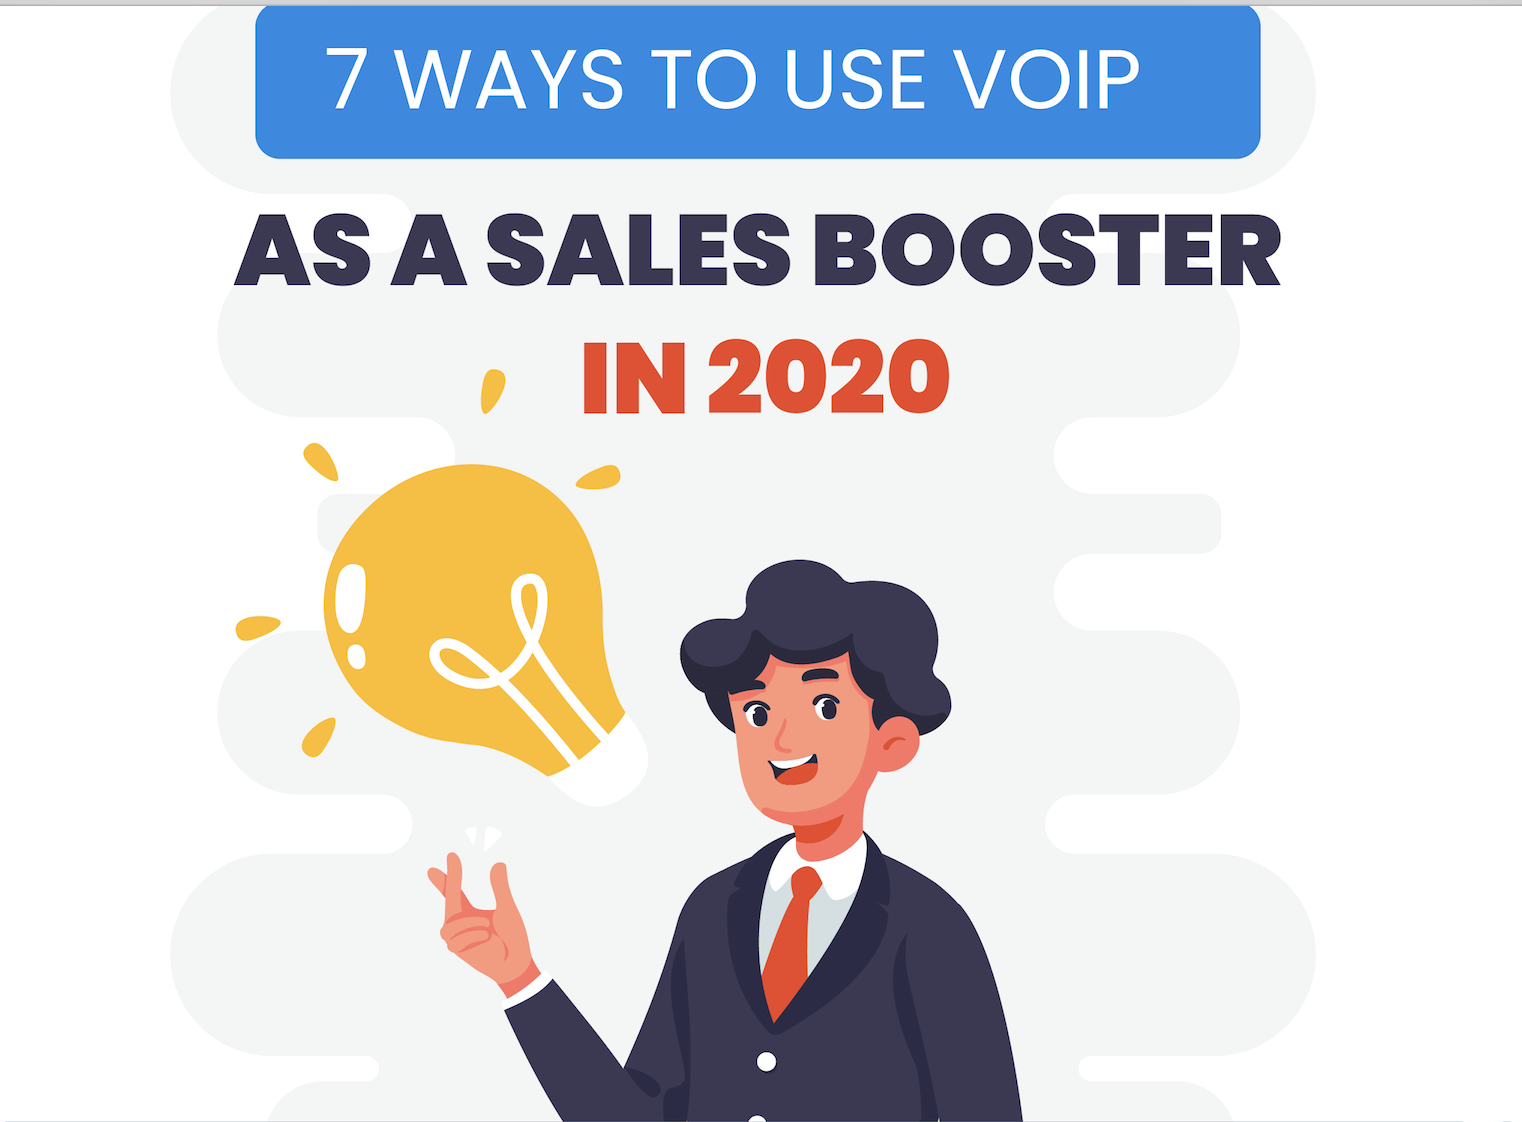 How VoIP Can Boost Sales in 2020